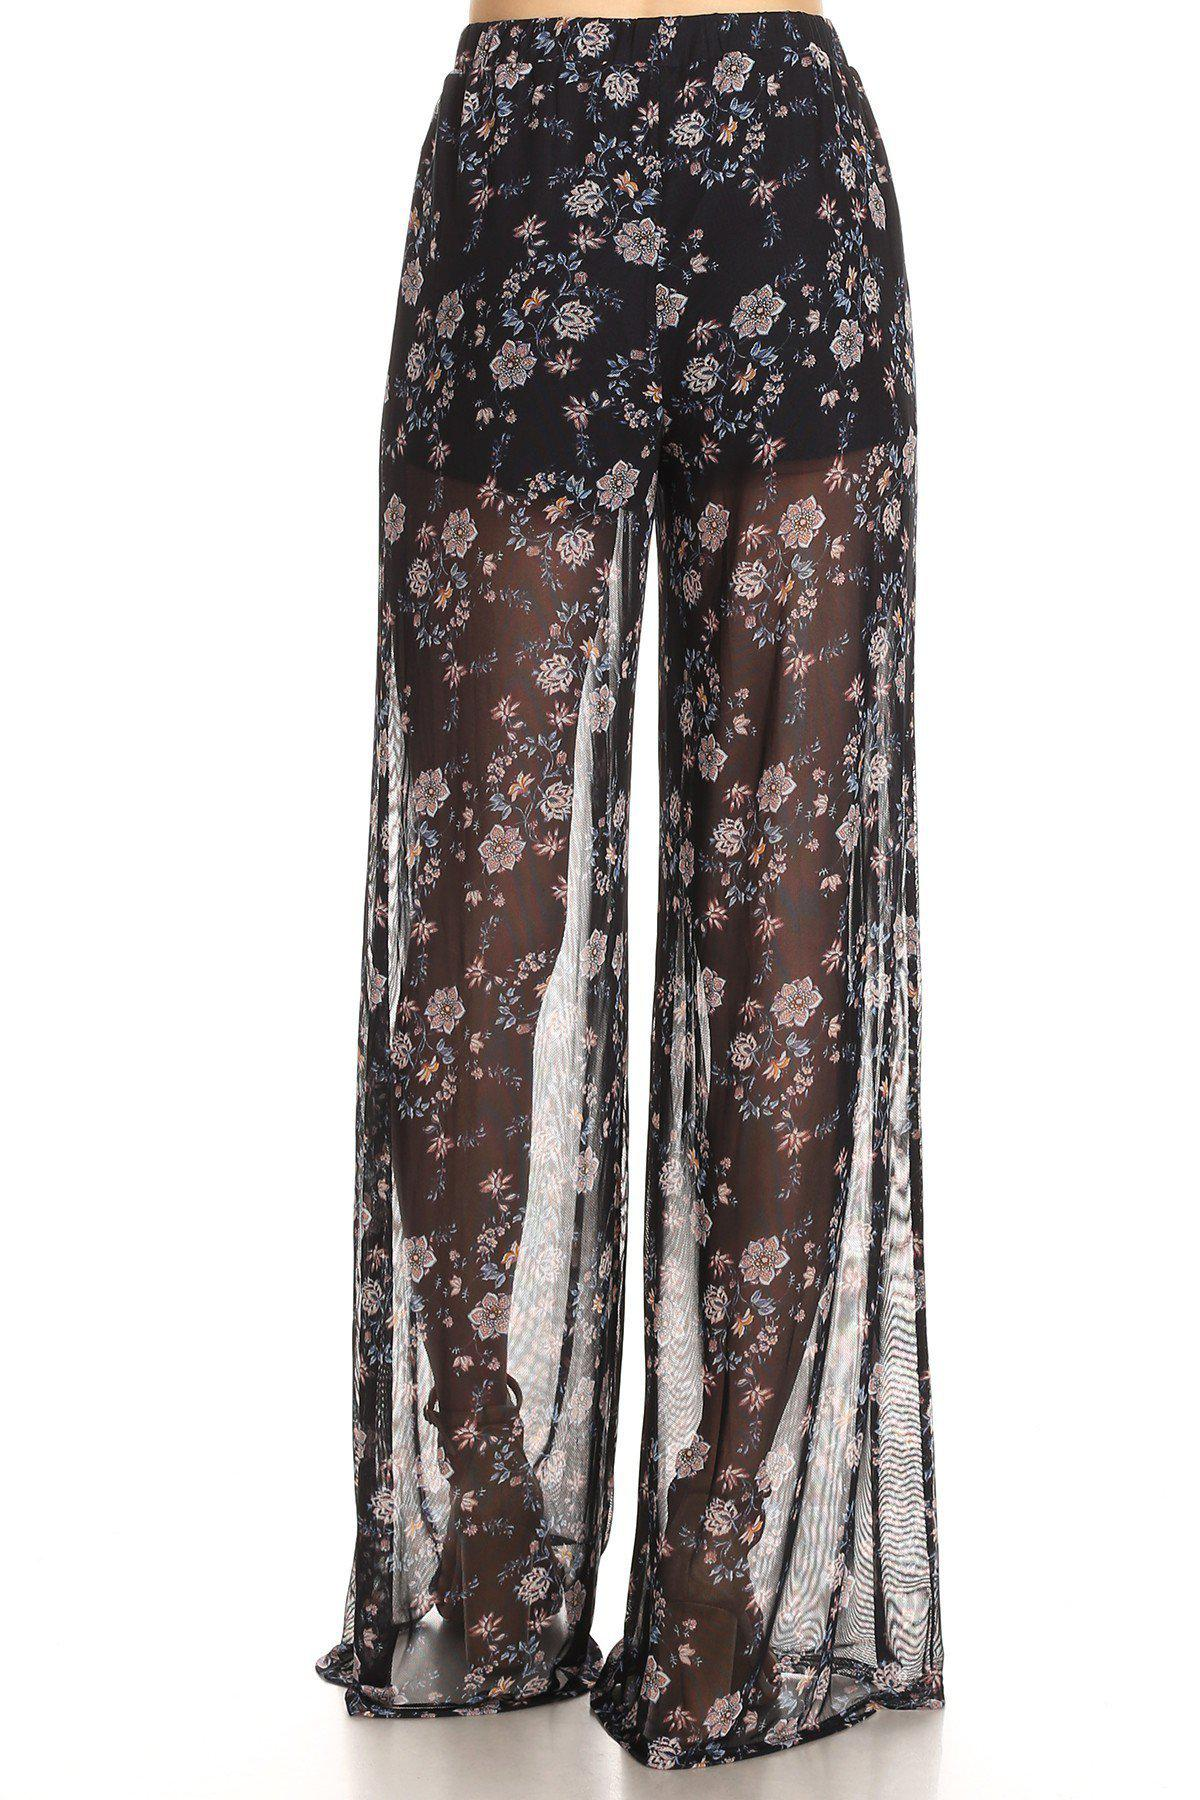 Black Floral Sheer Pants-GoGetGlam